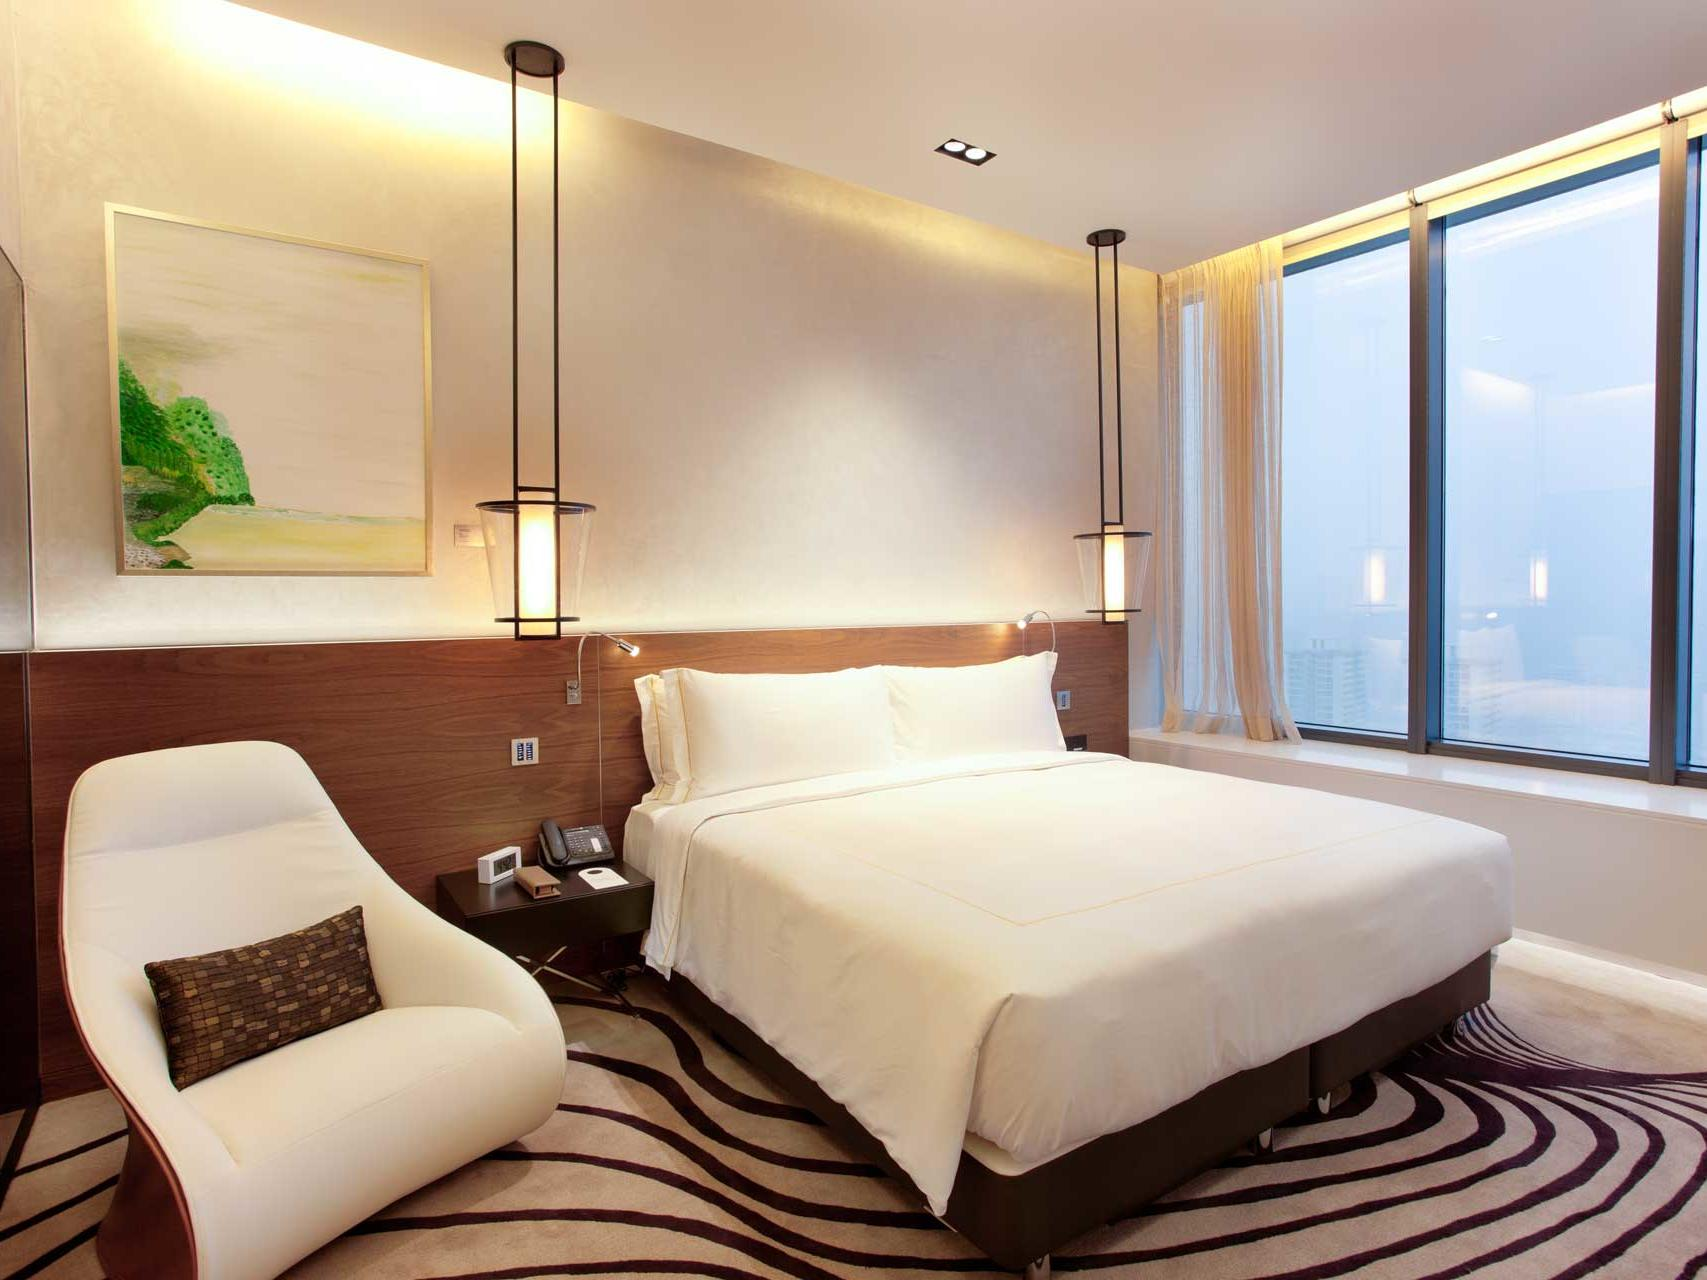 Interior of heliconia standard bedroom at one farrer hotel